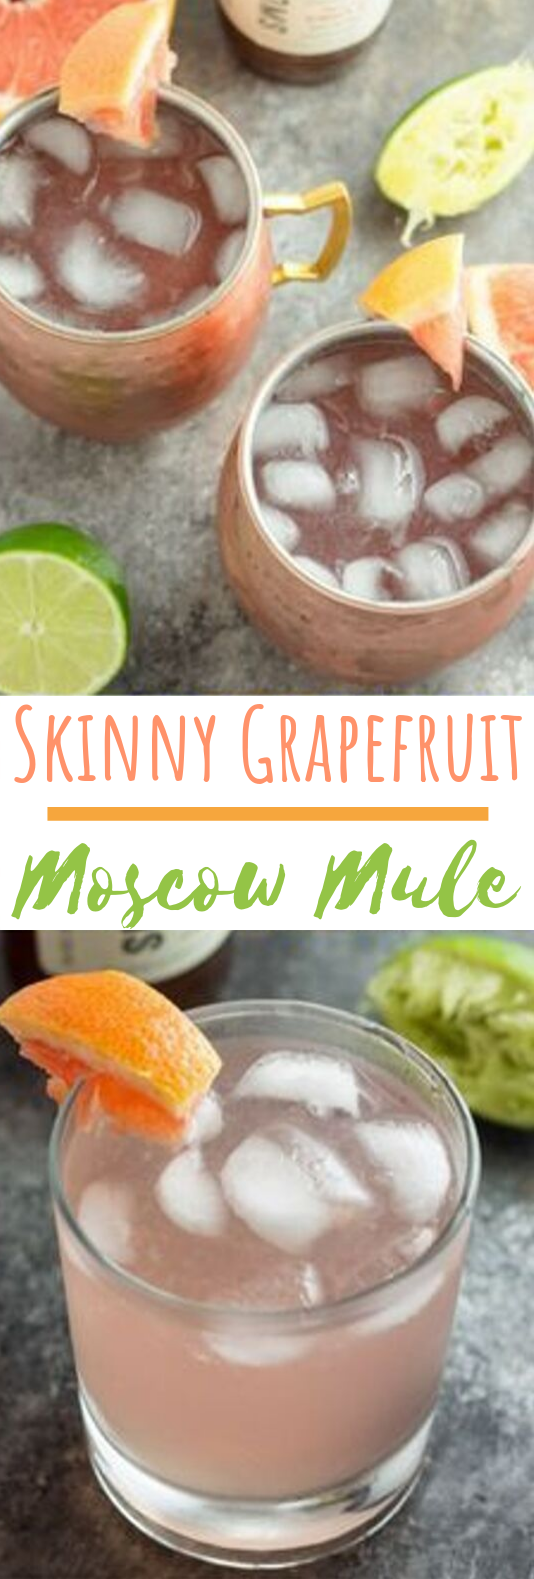 Skinny Grapefruit Moscow Mule #drinks #alcohol